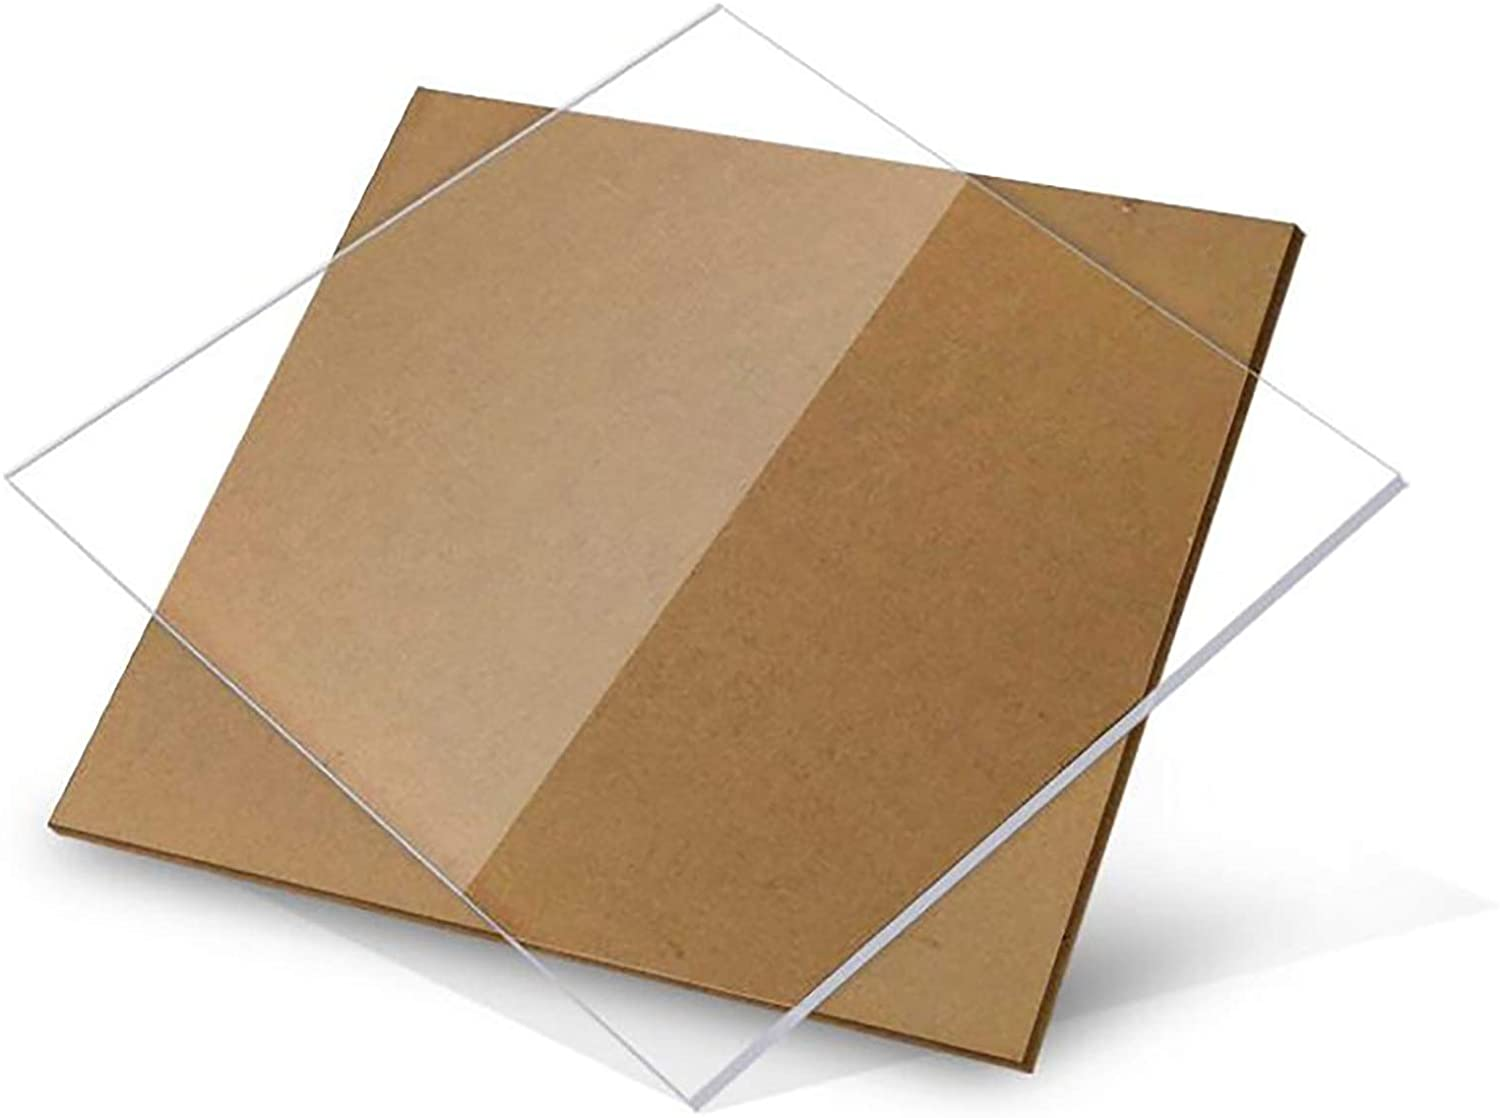 SQINAA Acrylic Sheet Plexiglass 8 x 8 in Square 0.2 Inch, Used for Signboards DIY Display Projects Crafts 1 Pcs,200x200x8mm